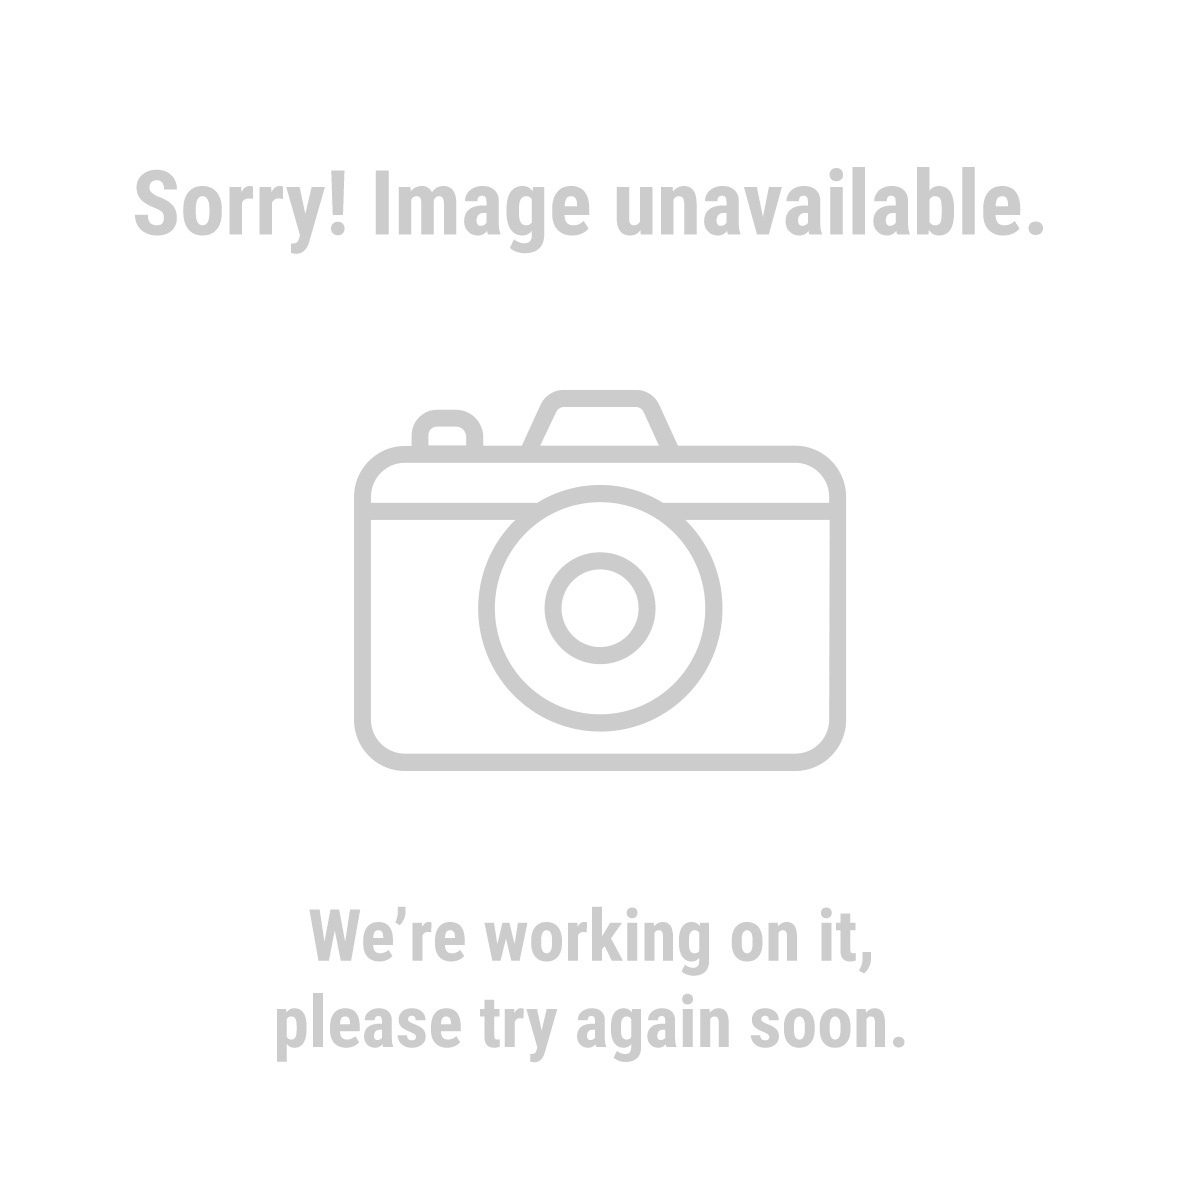 HARDY 66289 5 Pair Brown Jersey Gloves